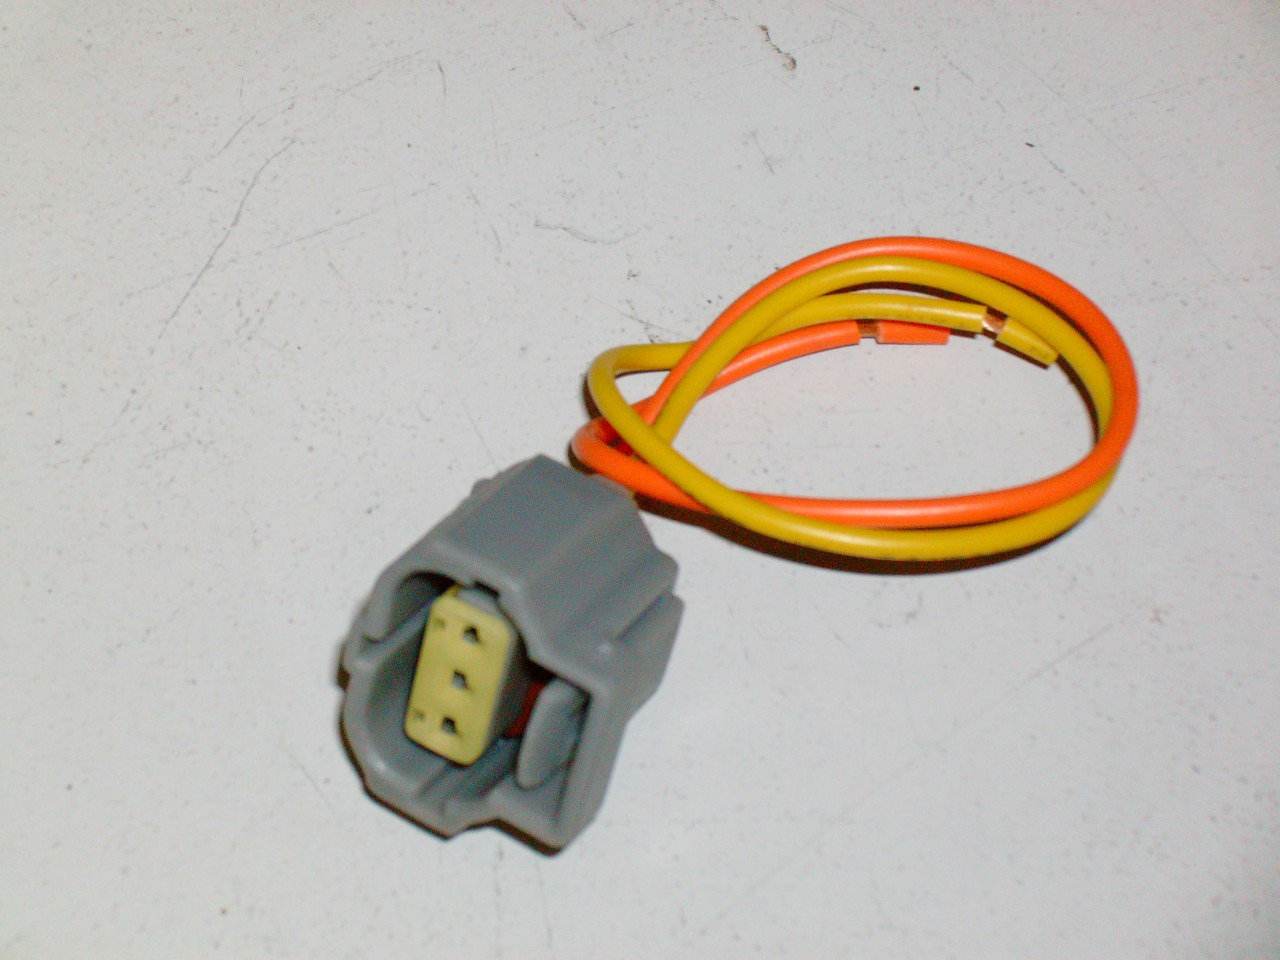 1999 04 Ford Mustang Alternator 2 Wire Plug Harness Clip 46 Gt 38 Lx 01 Taurus Ses Wiring Image 1